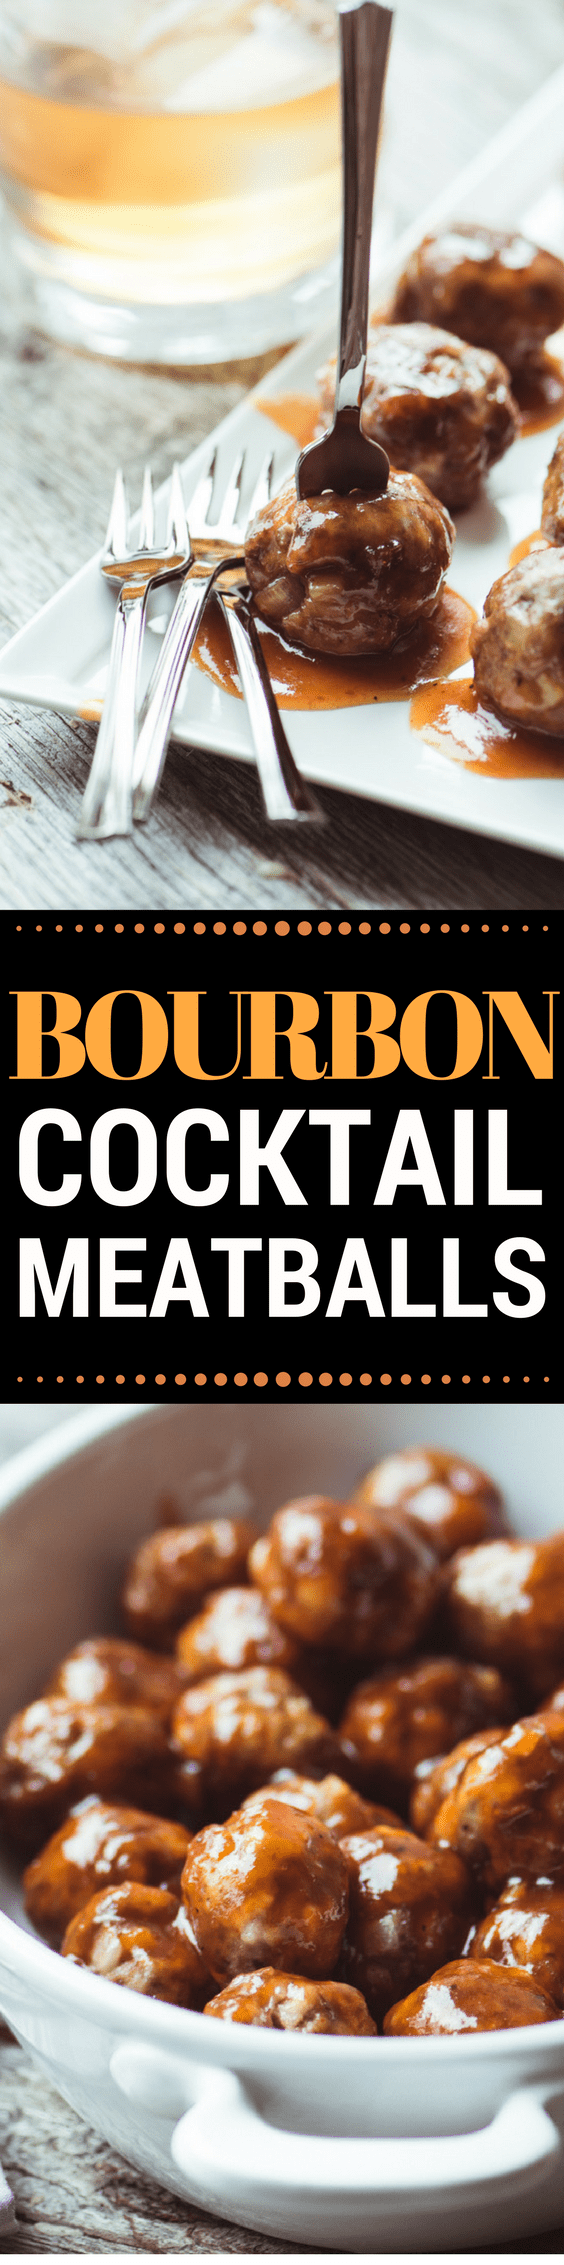 These luscious little Bourbon Meatballs are going to be the hit of your next party ~ people will flock to the meatballs, but they'll hang around for the sauce!! #meatballs #appetizer #bourbon #cocktailmeatballs #recipe #holidays #partyfood #easycocktailmeatballs #hotappetizer